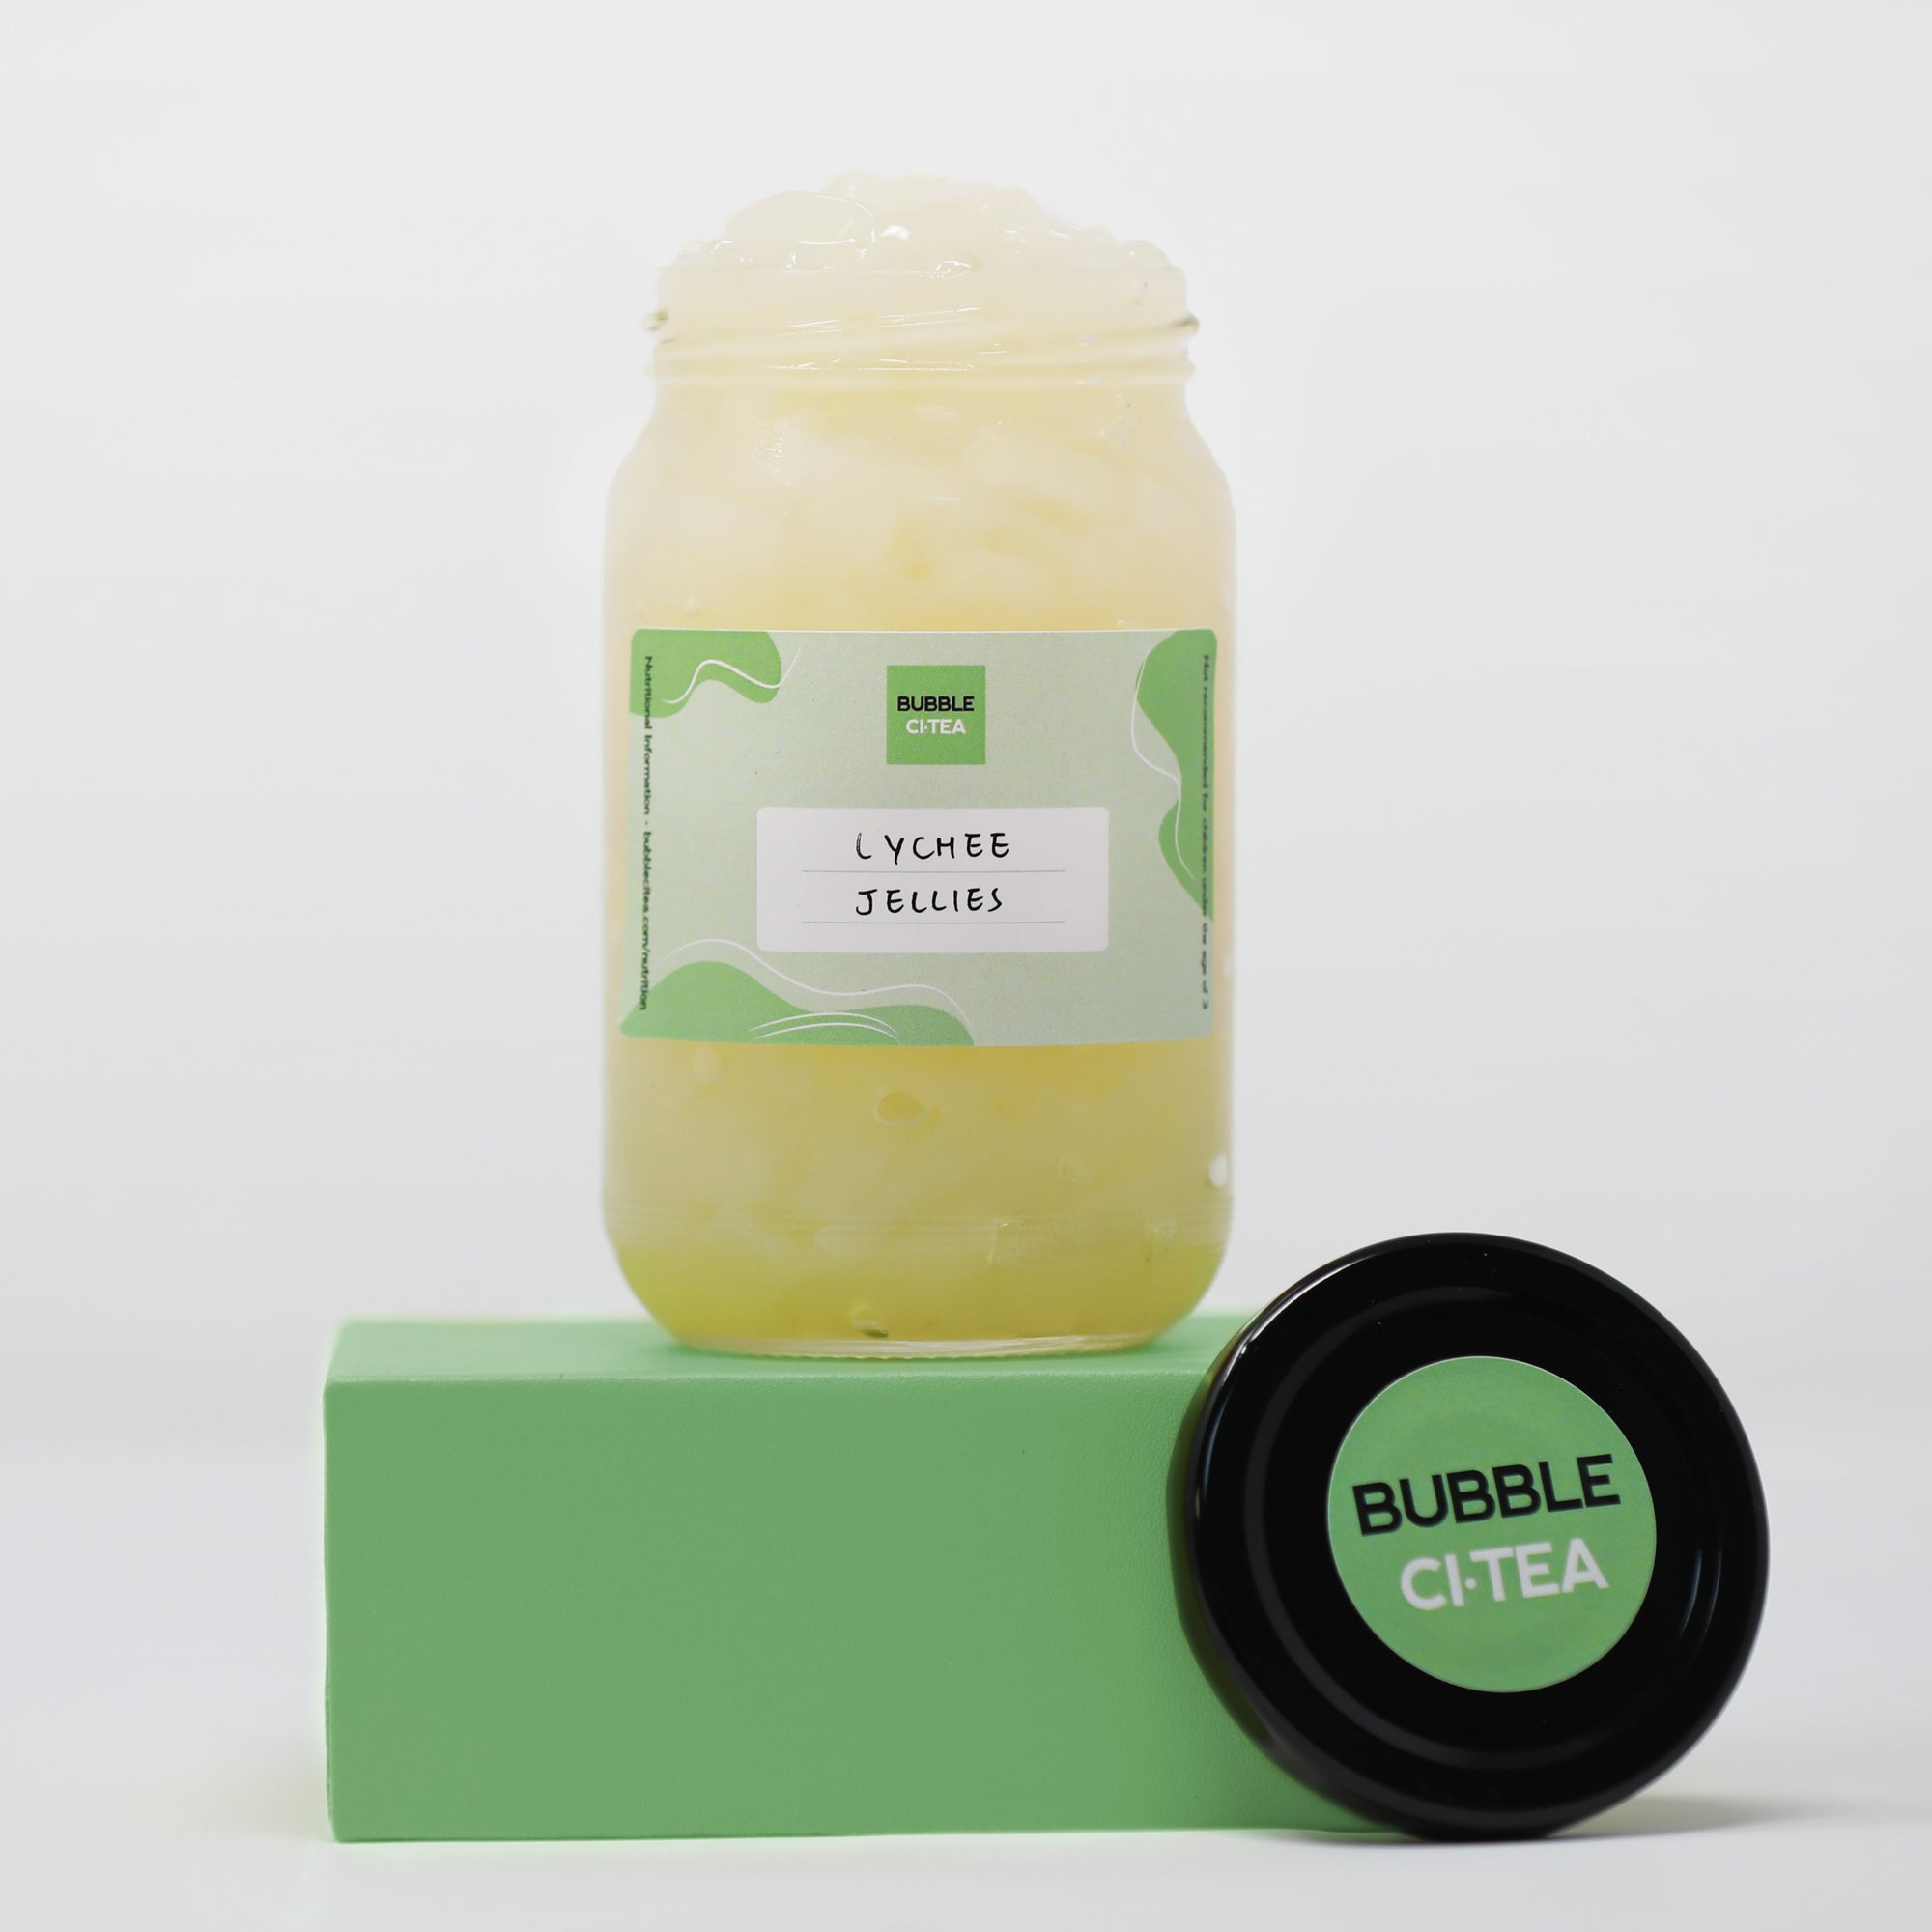 Glass jar with lychee jelly sitting on a green stand